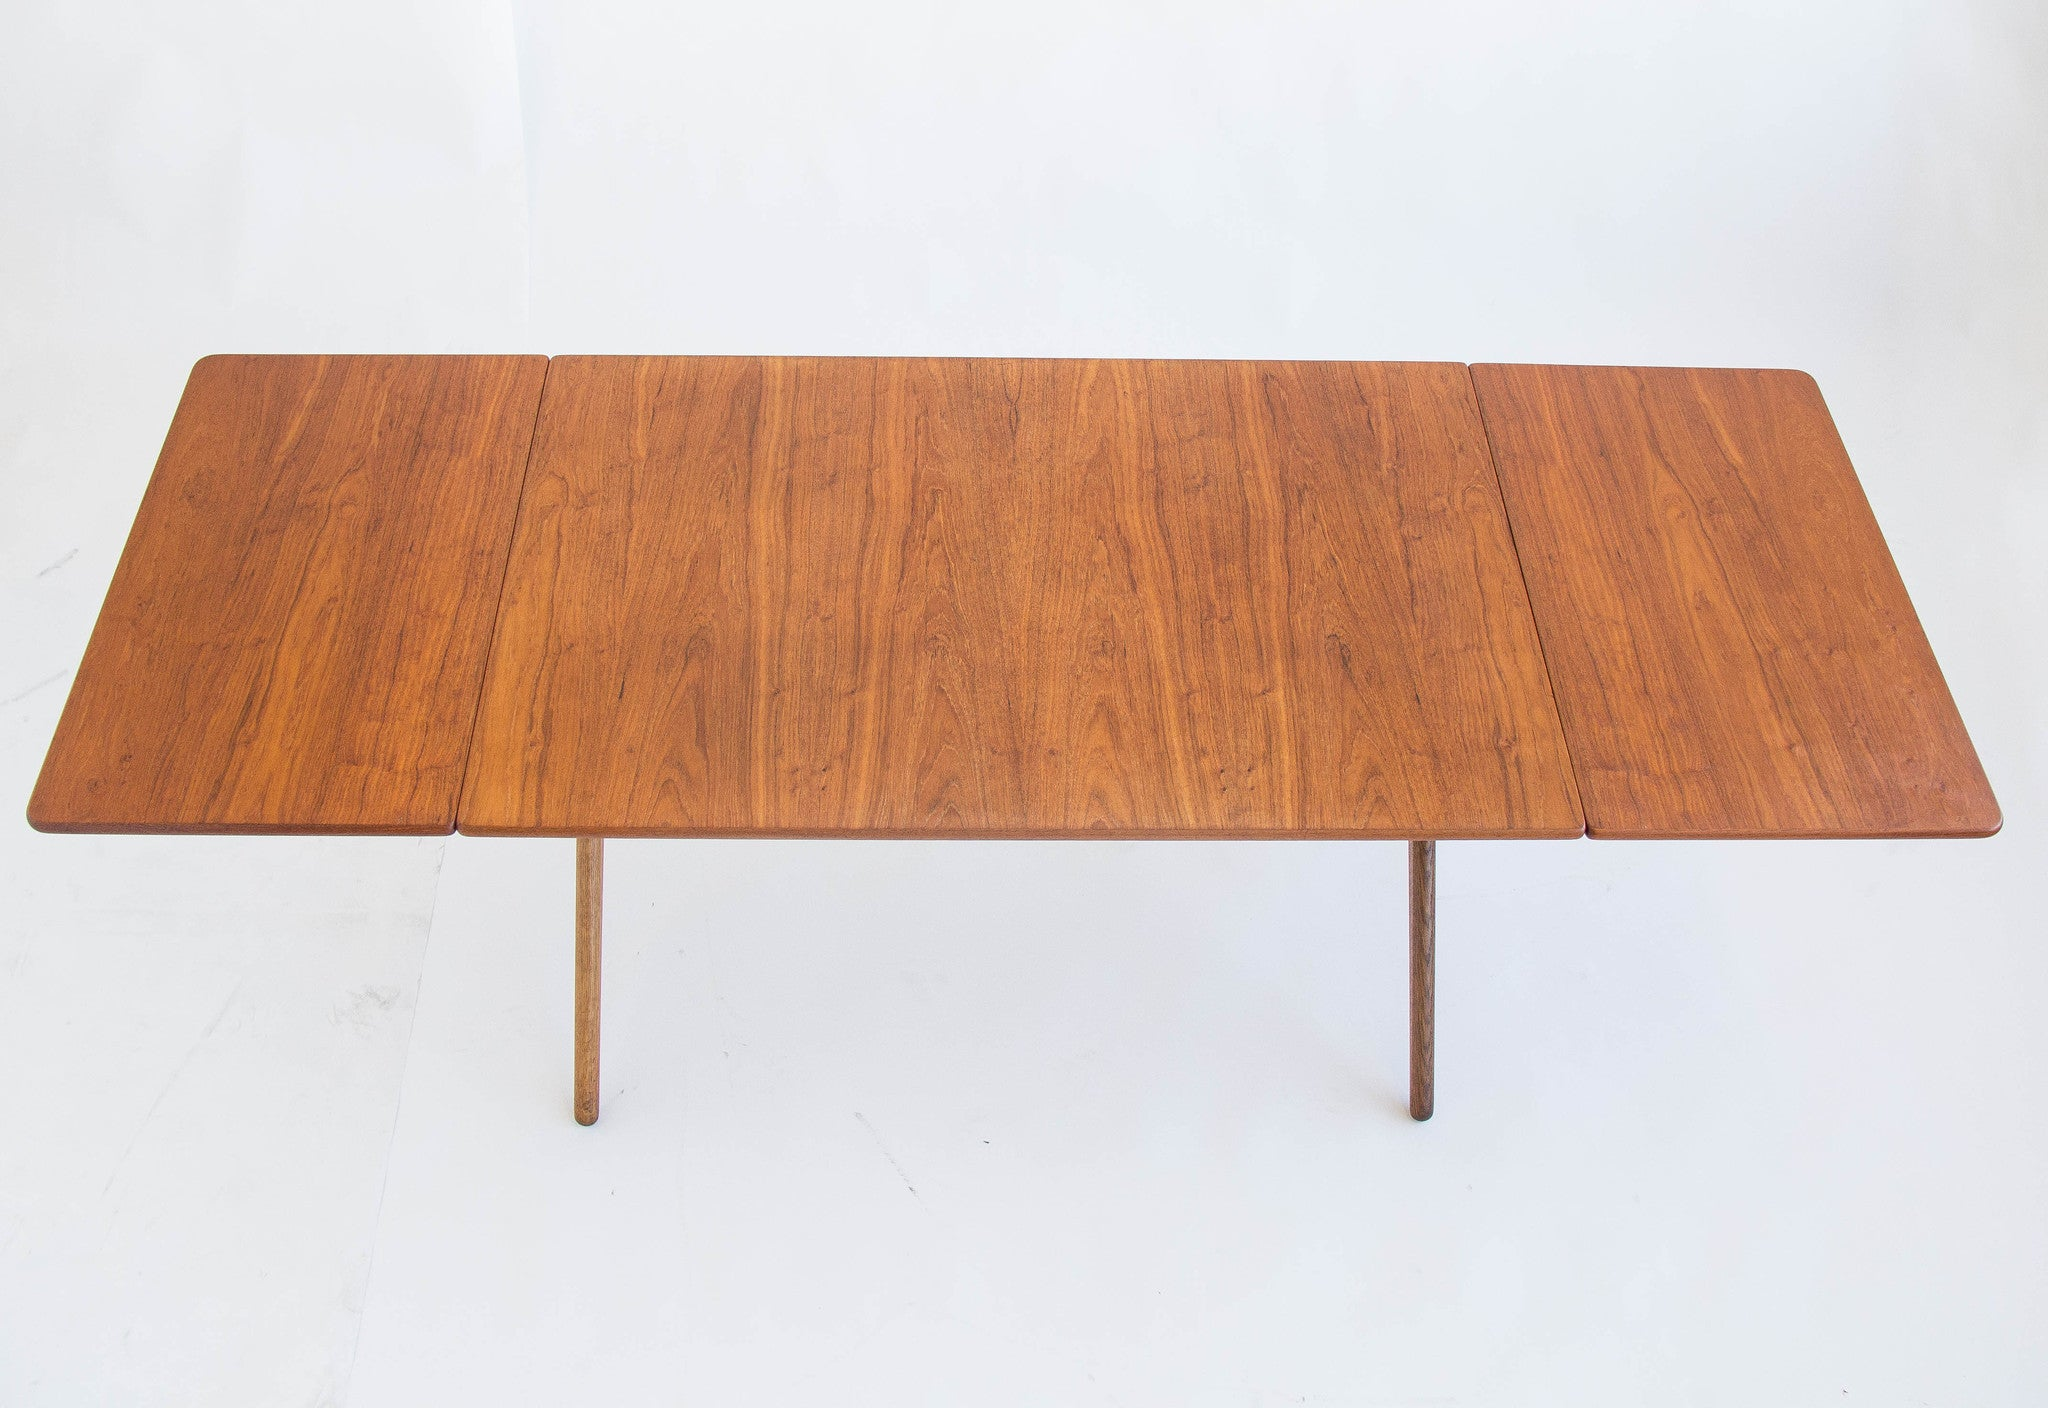 Hans j wegner cross leg dining table by andreas tuck model at 309 hans j wegner cross leg dining table by andreas tuck model at 309 watchthetrailerfo